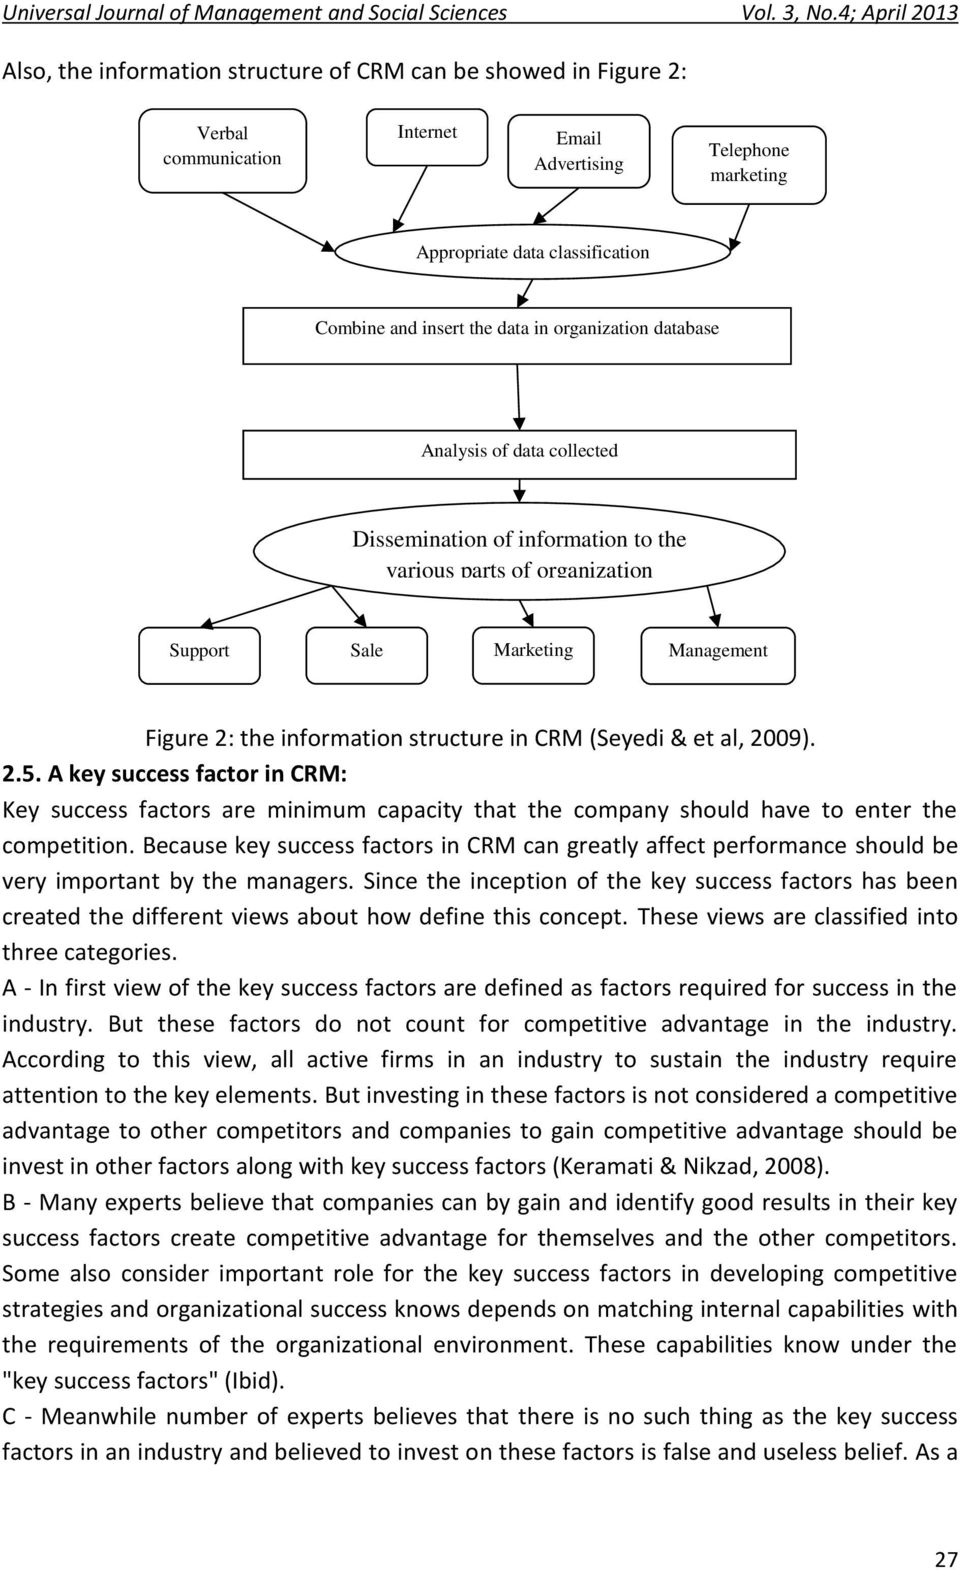 & et al, 2009). 2.5. A key success factor in CRM: Key success factors are minimum capacity that the company should have to enter the competition.